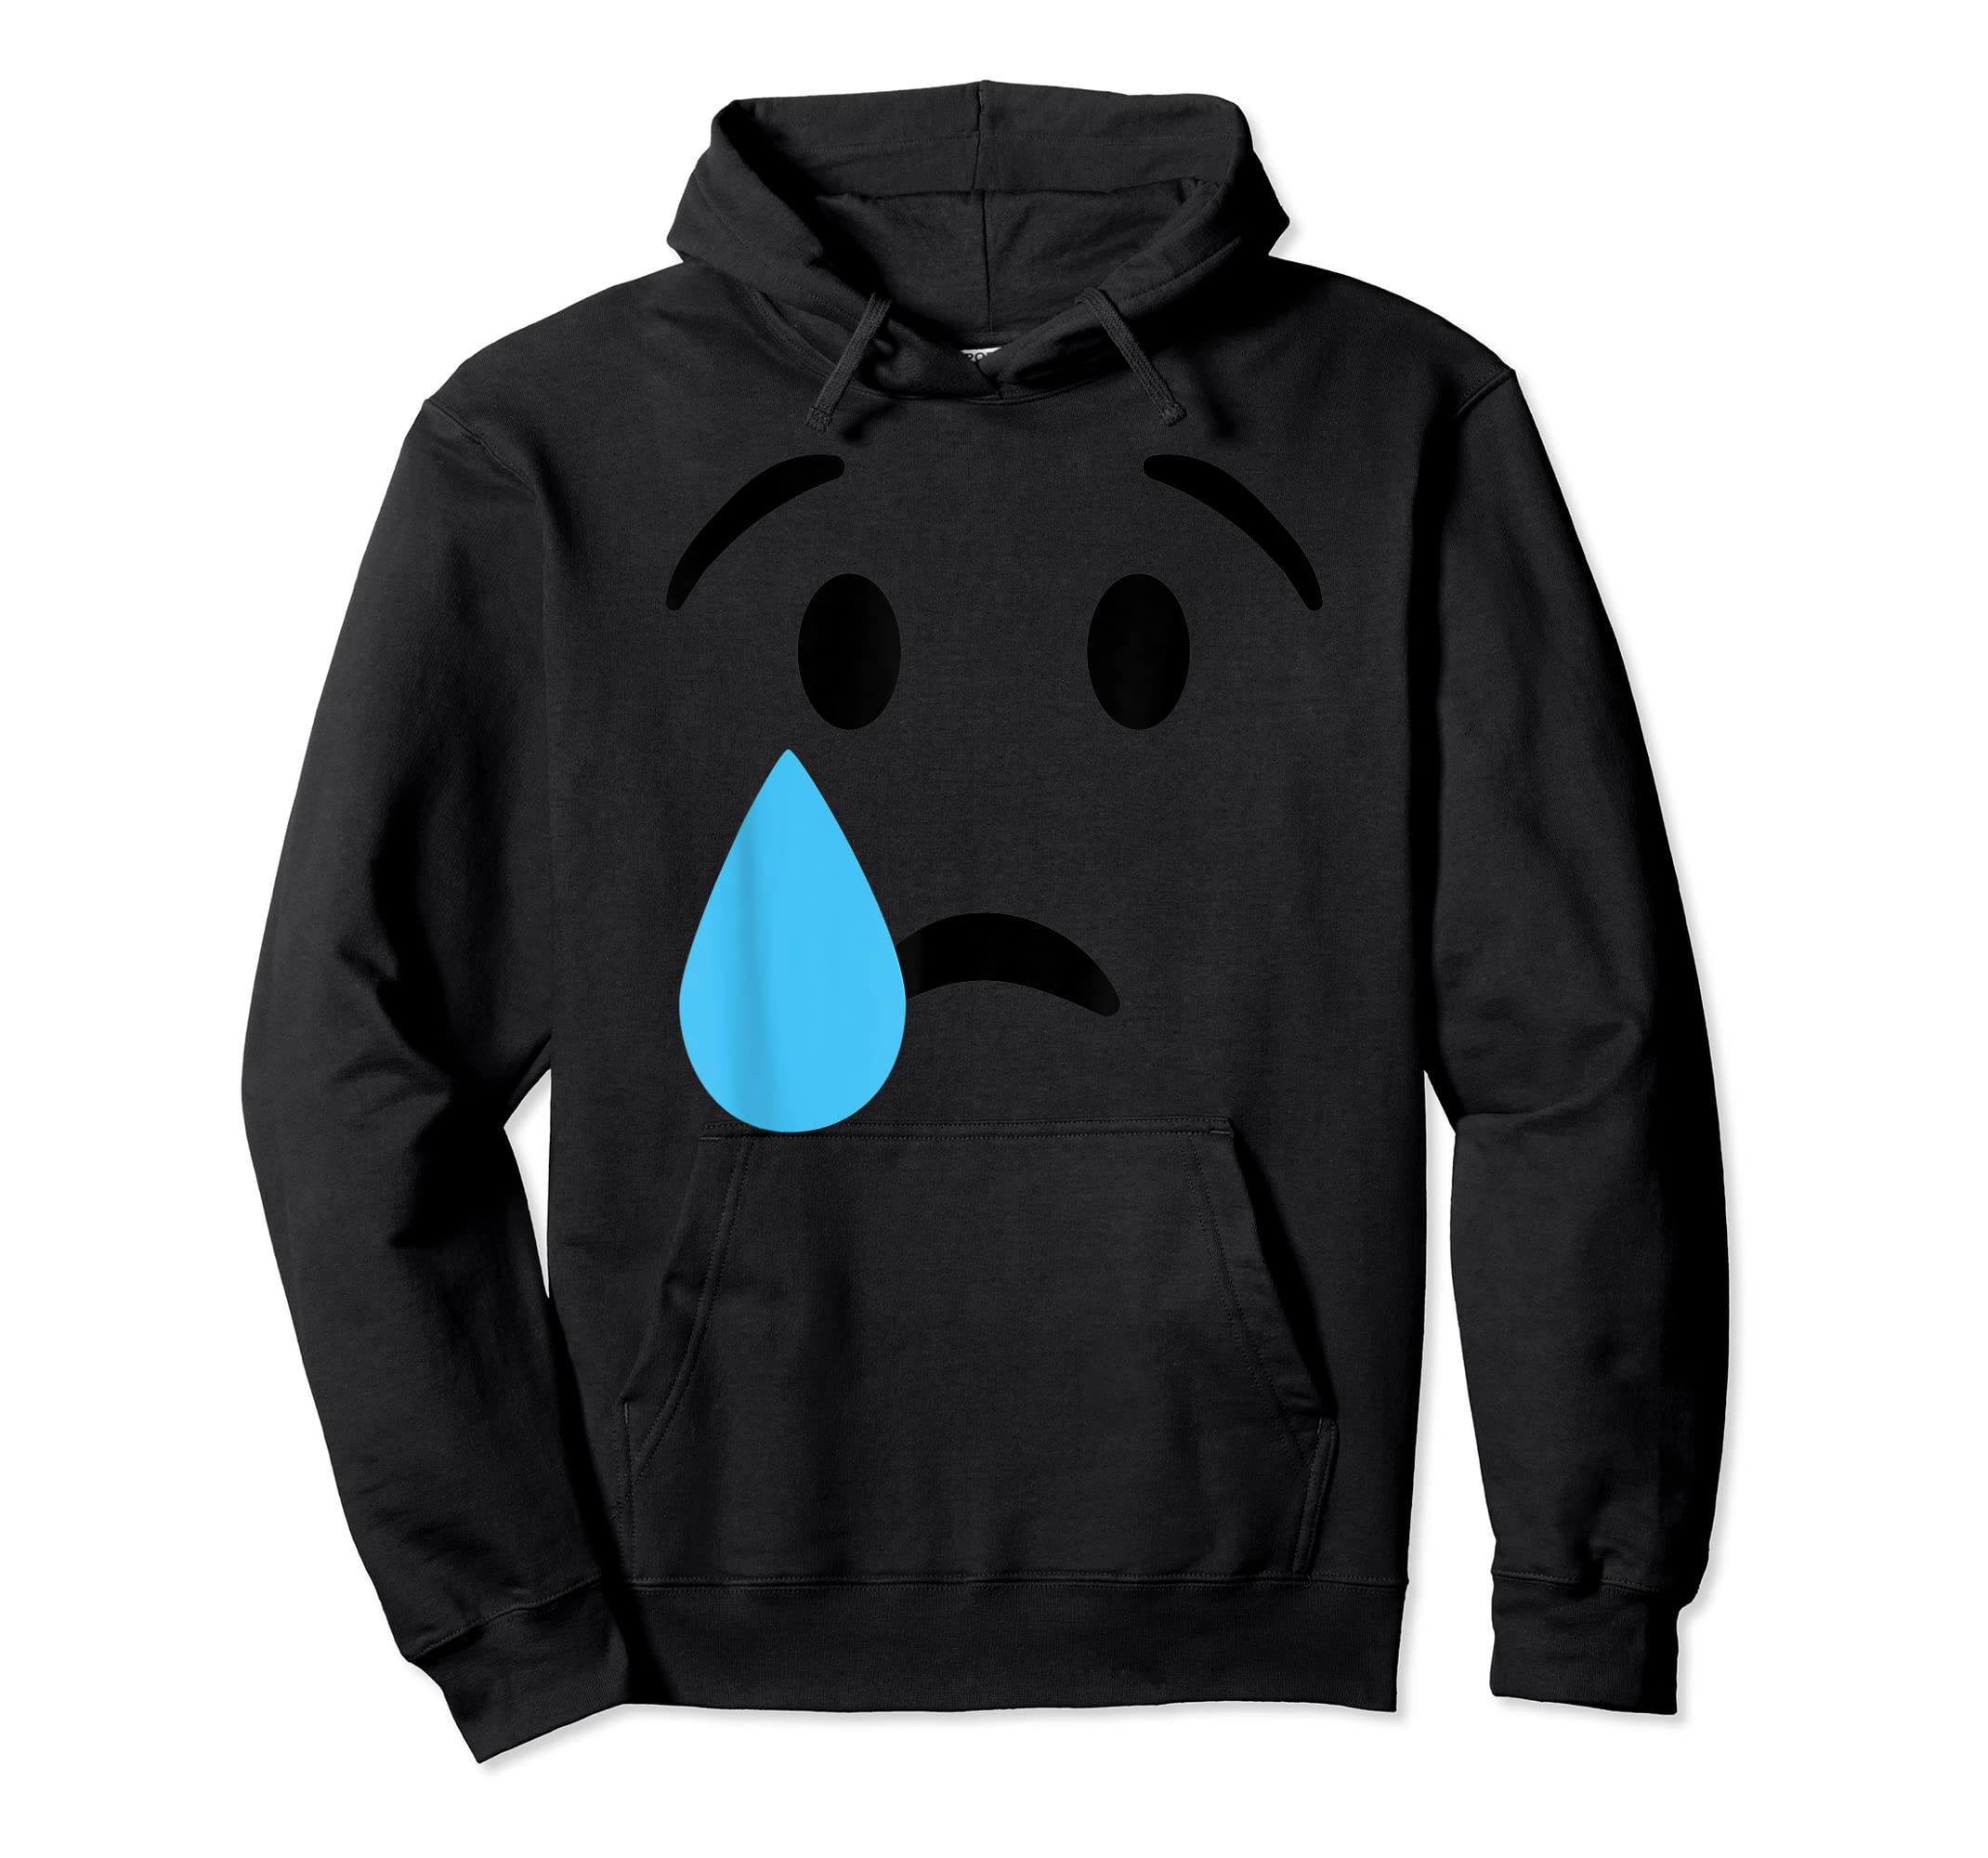 Sad Crying Tear Eyes Face Emojis Emoticon Halloween Costume T-Shirt-Hoodie-Black